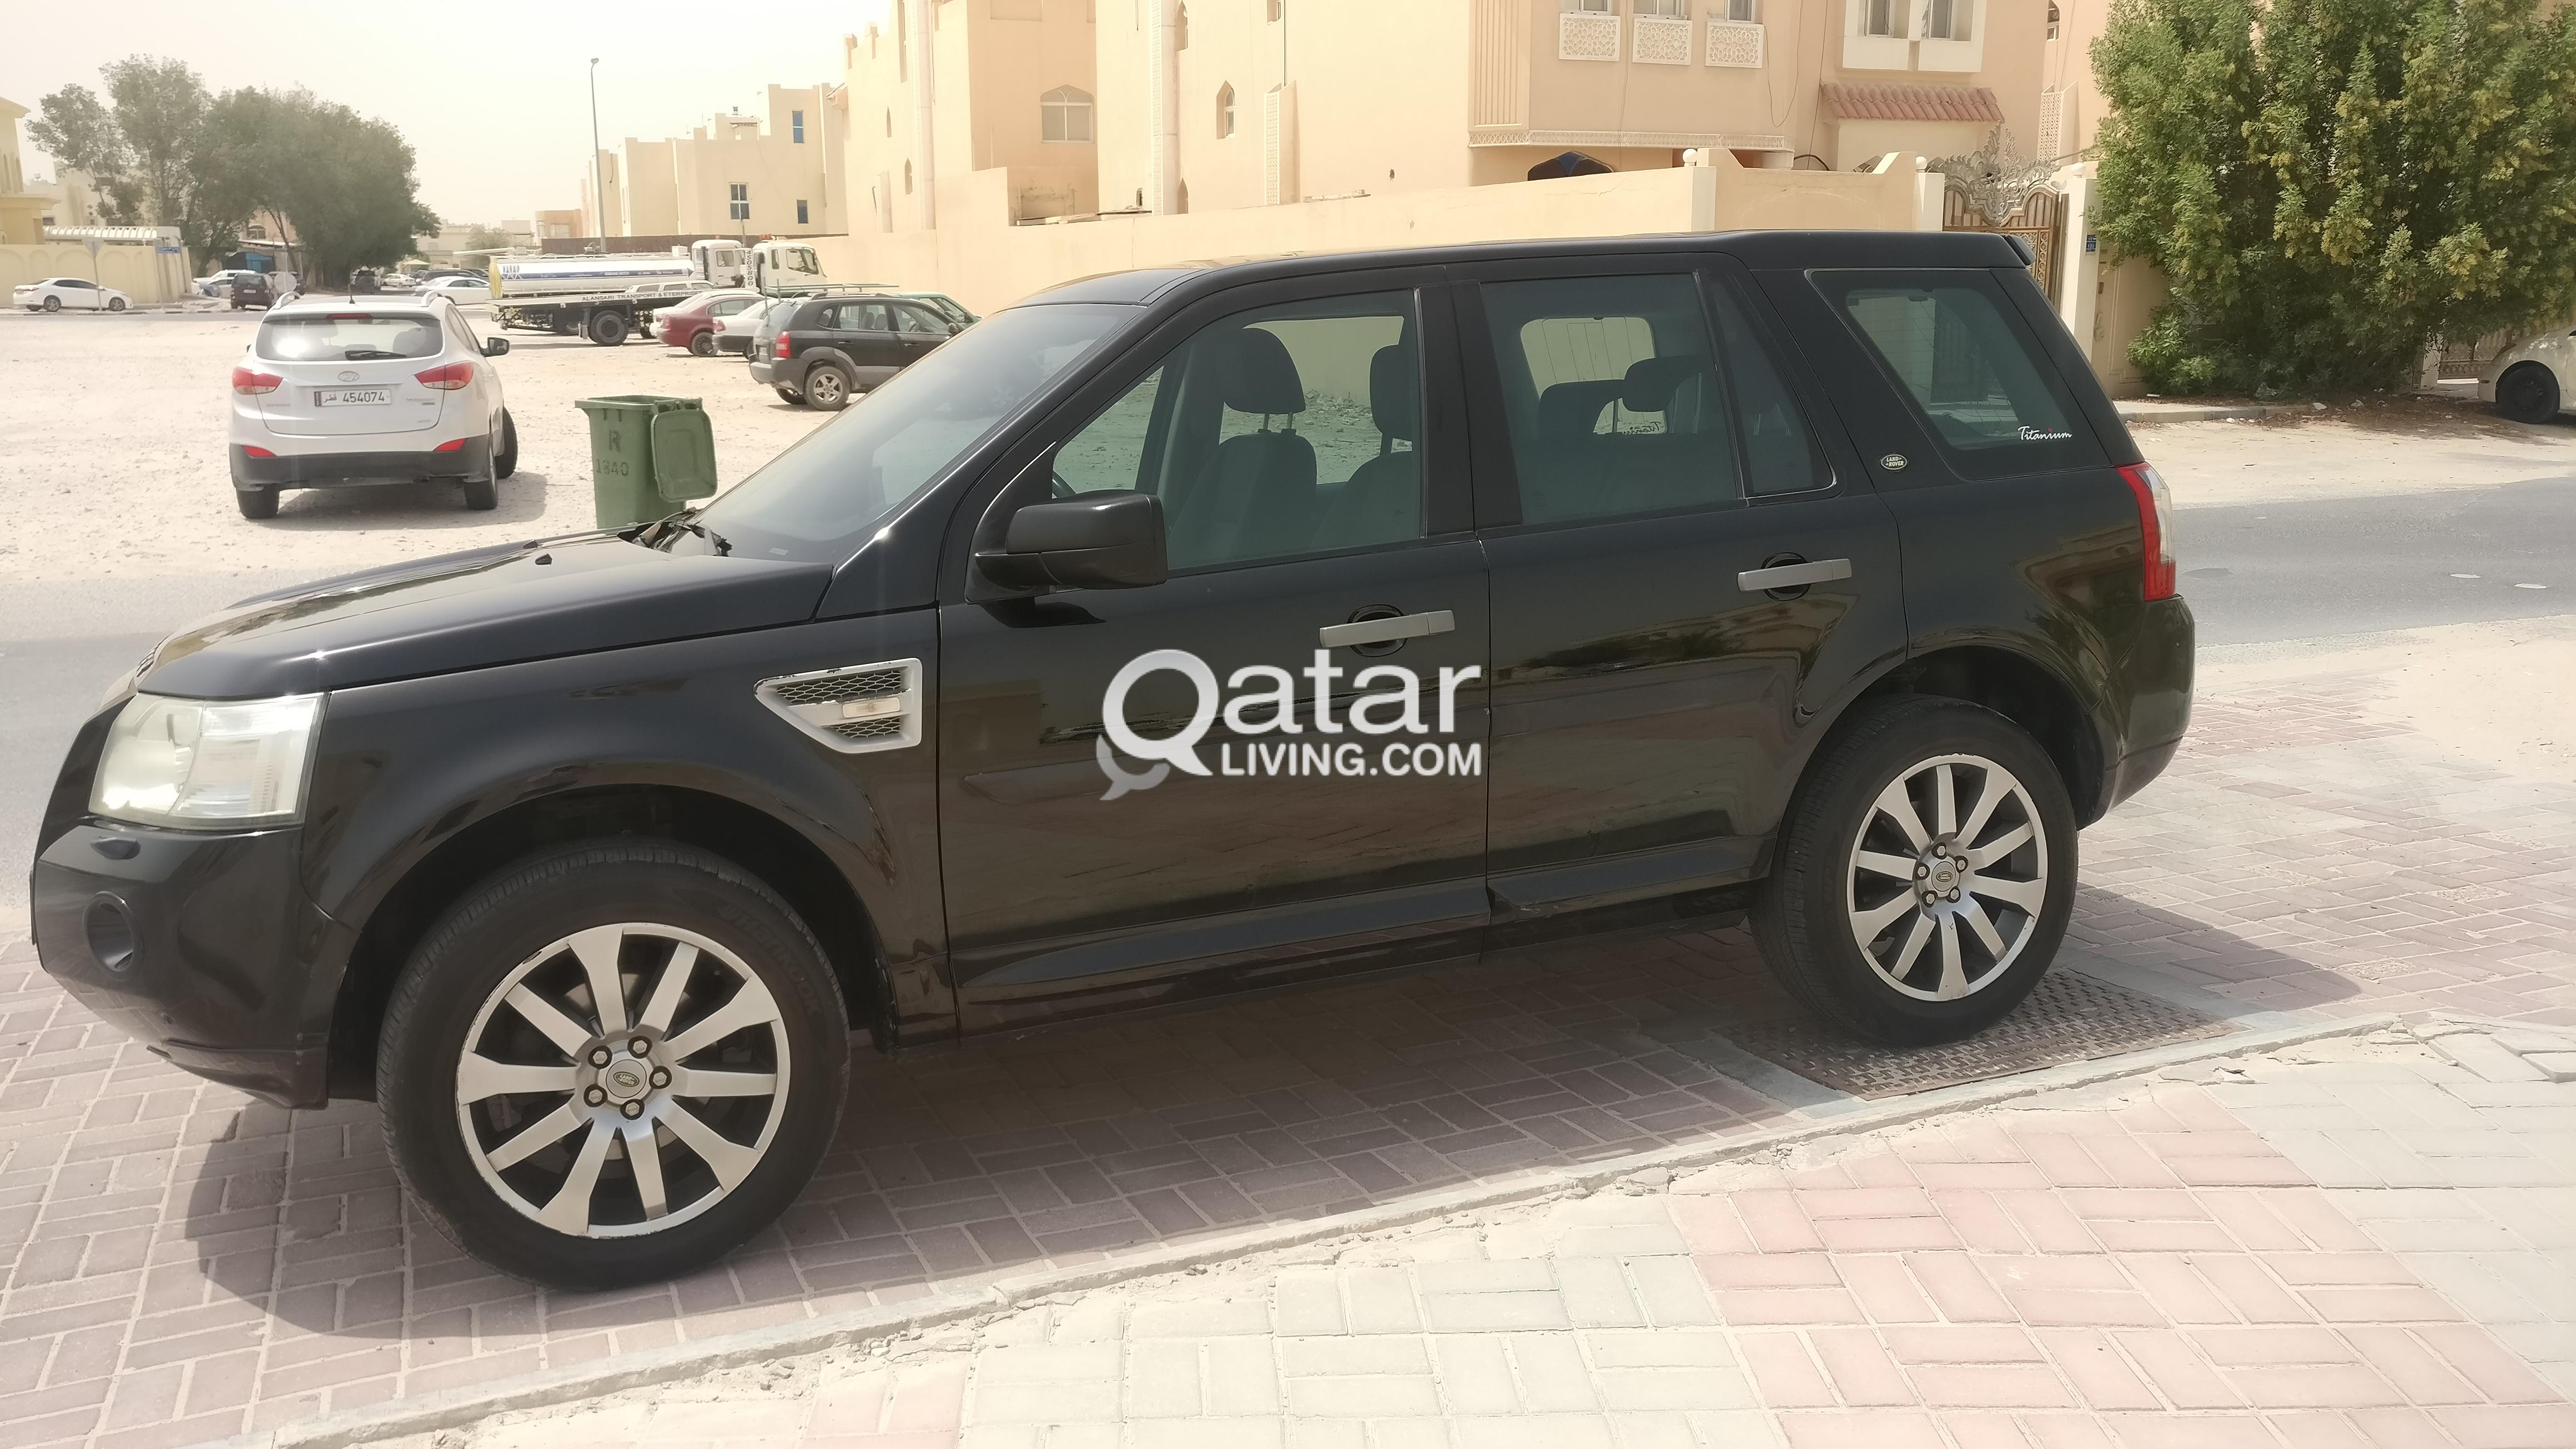 advert vehicles reduced full land z qatar landrover living hse title price rover option